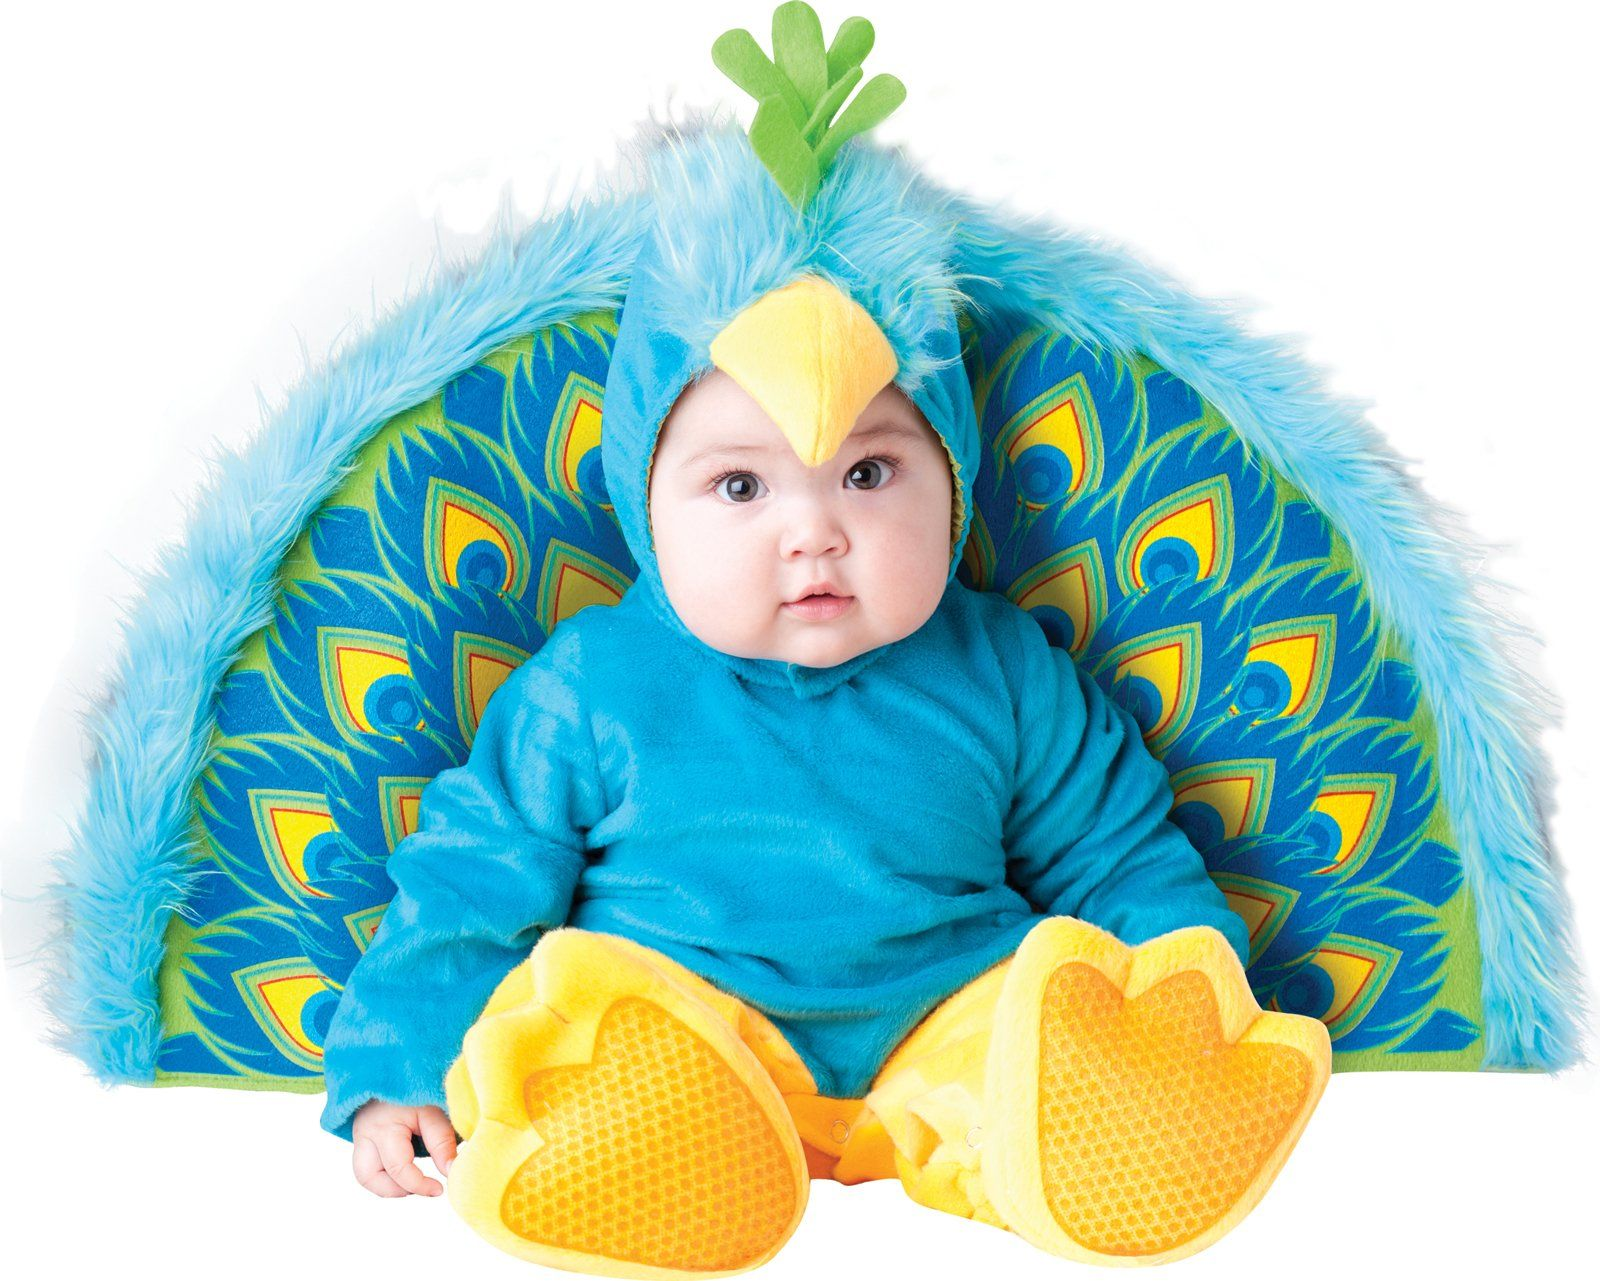 Baby Peacock Infant Toddler Costume